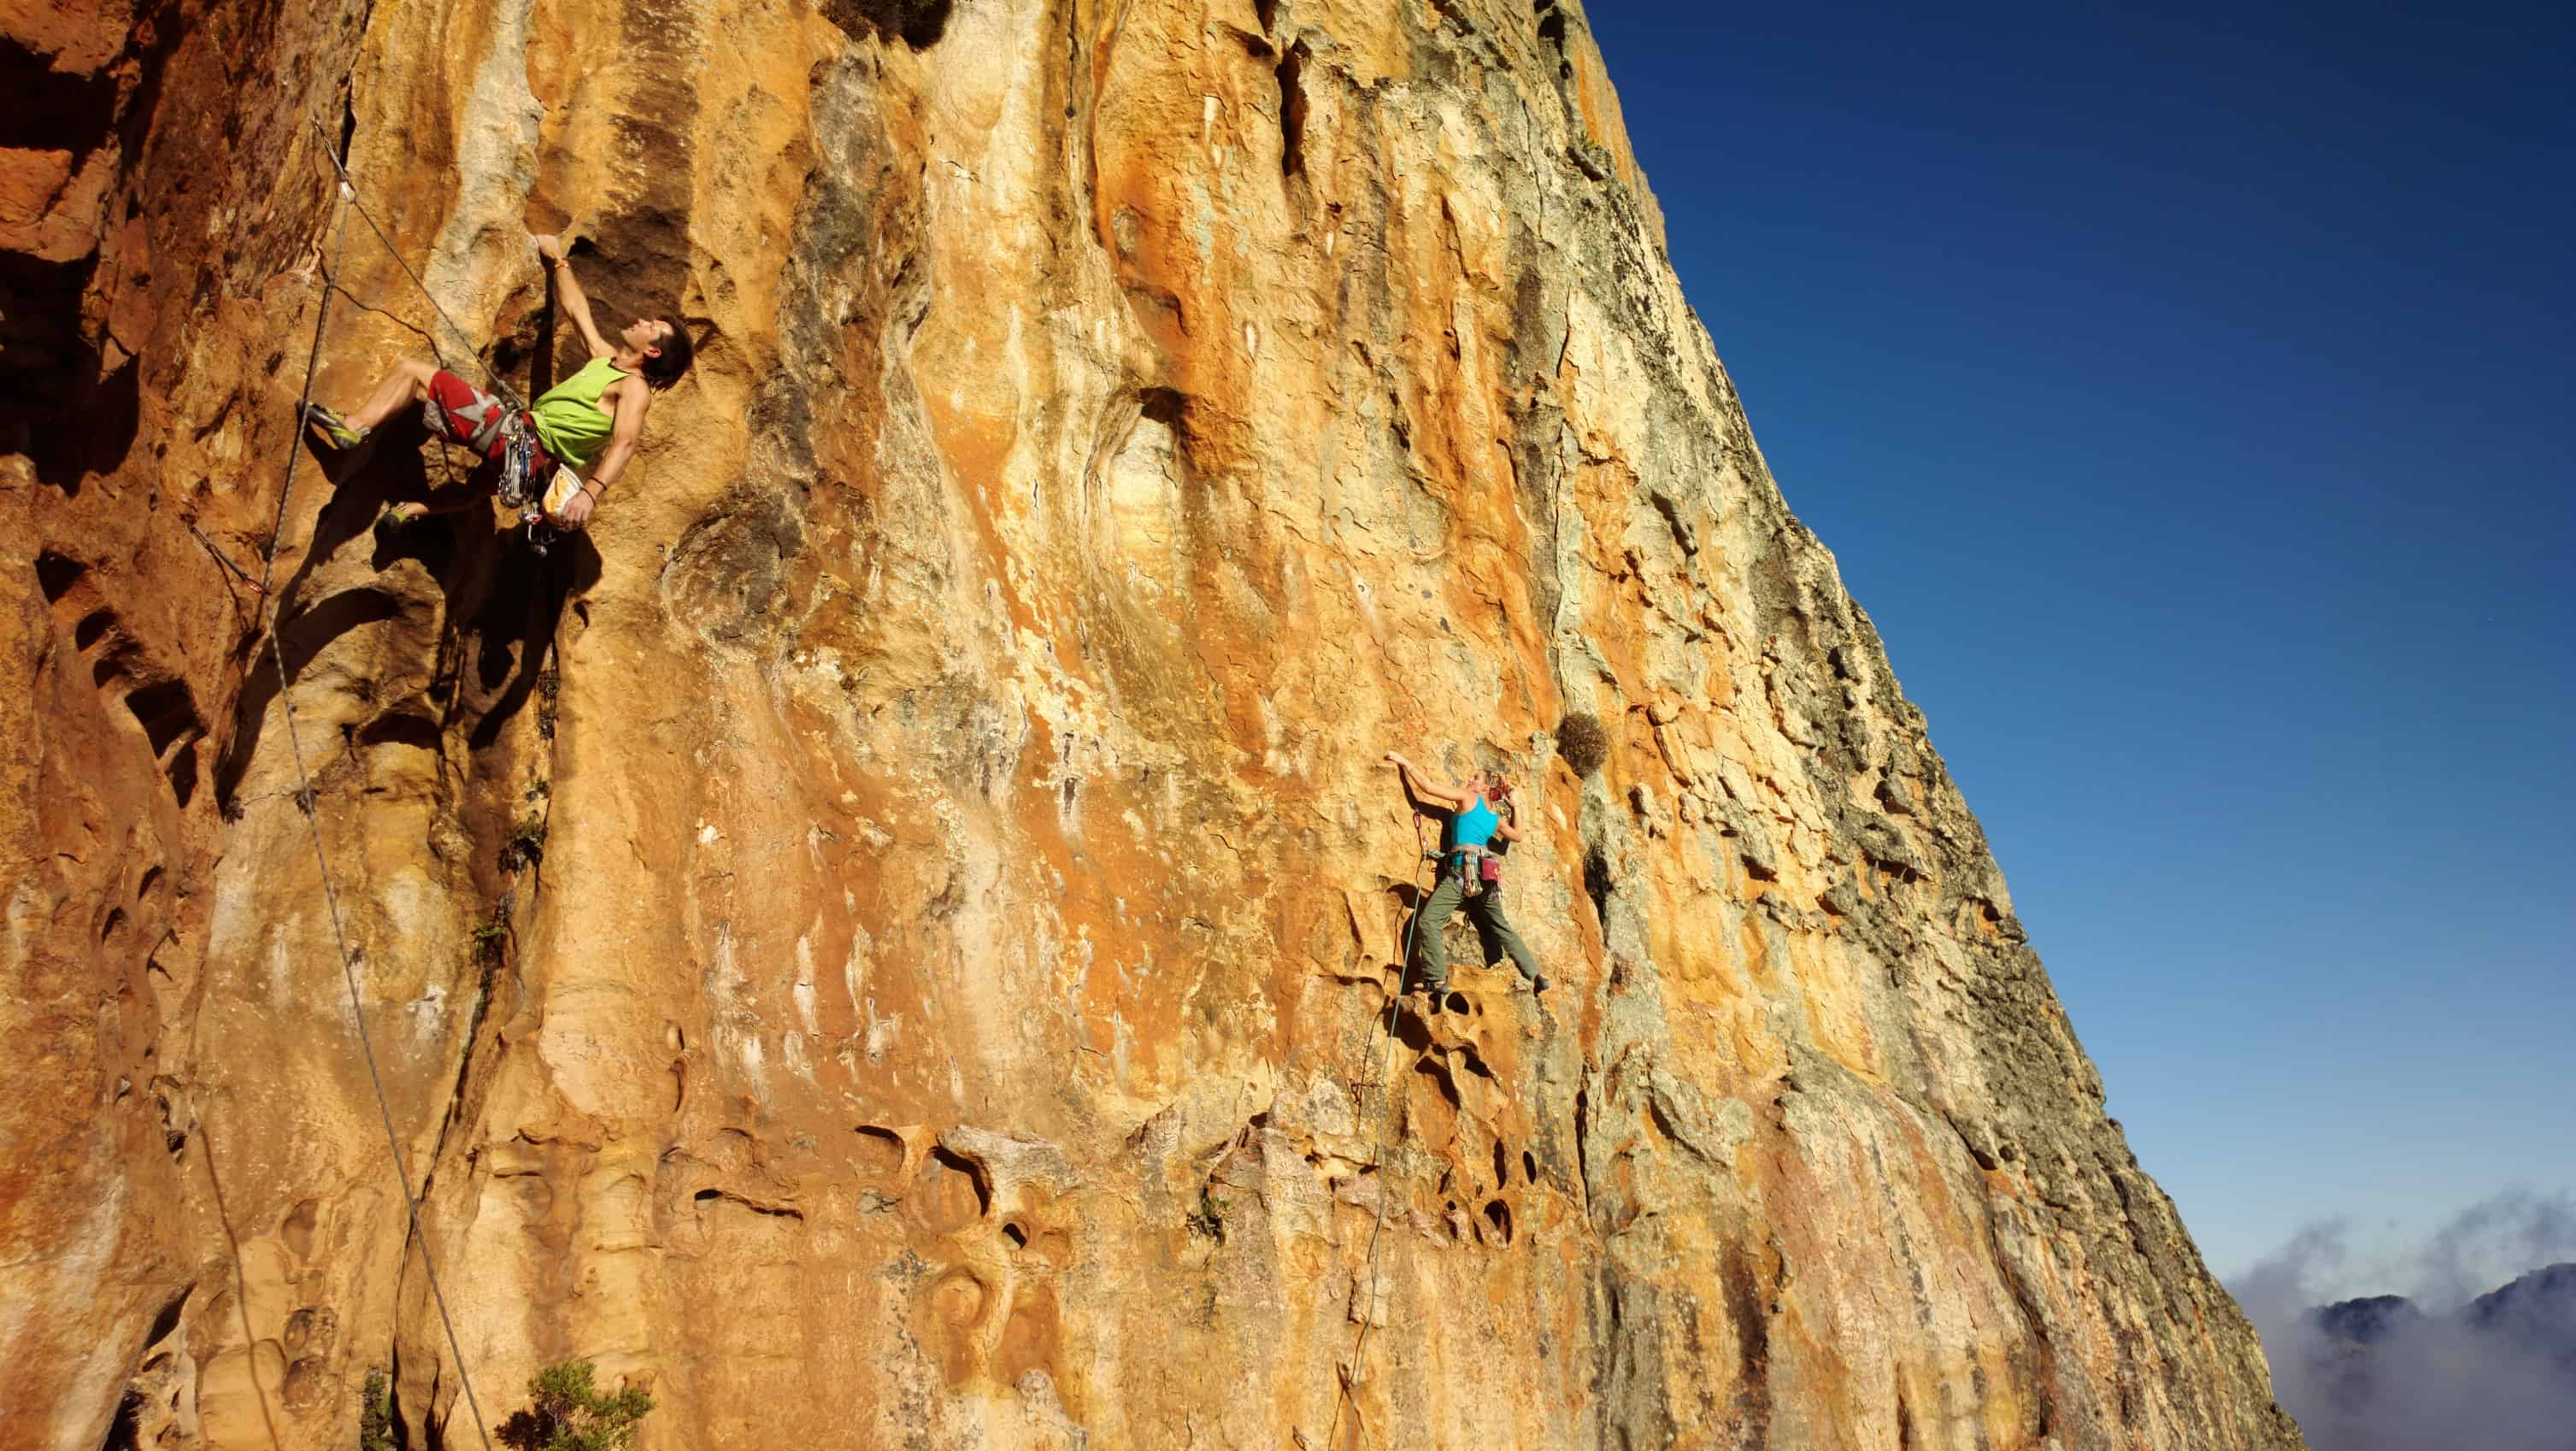 rock-climbing-in-south-africa-3-captured-with-nokia-808-pureview